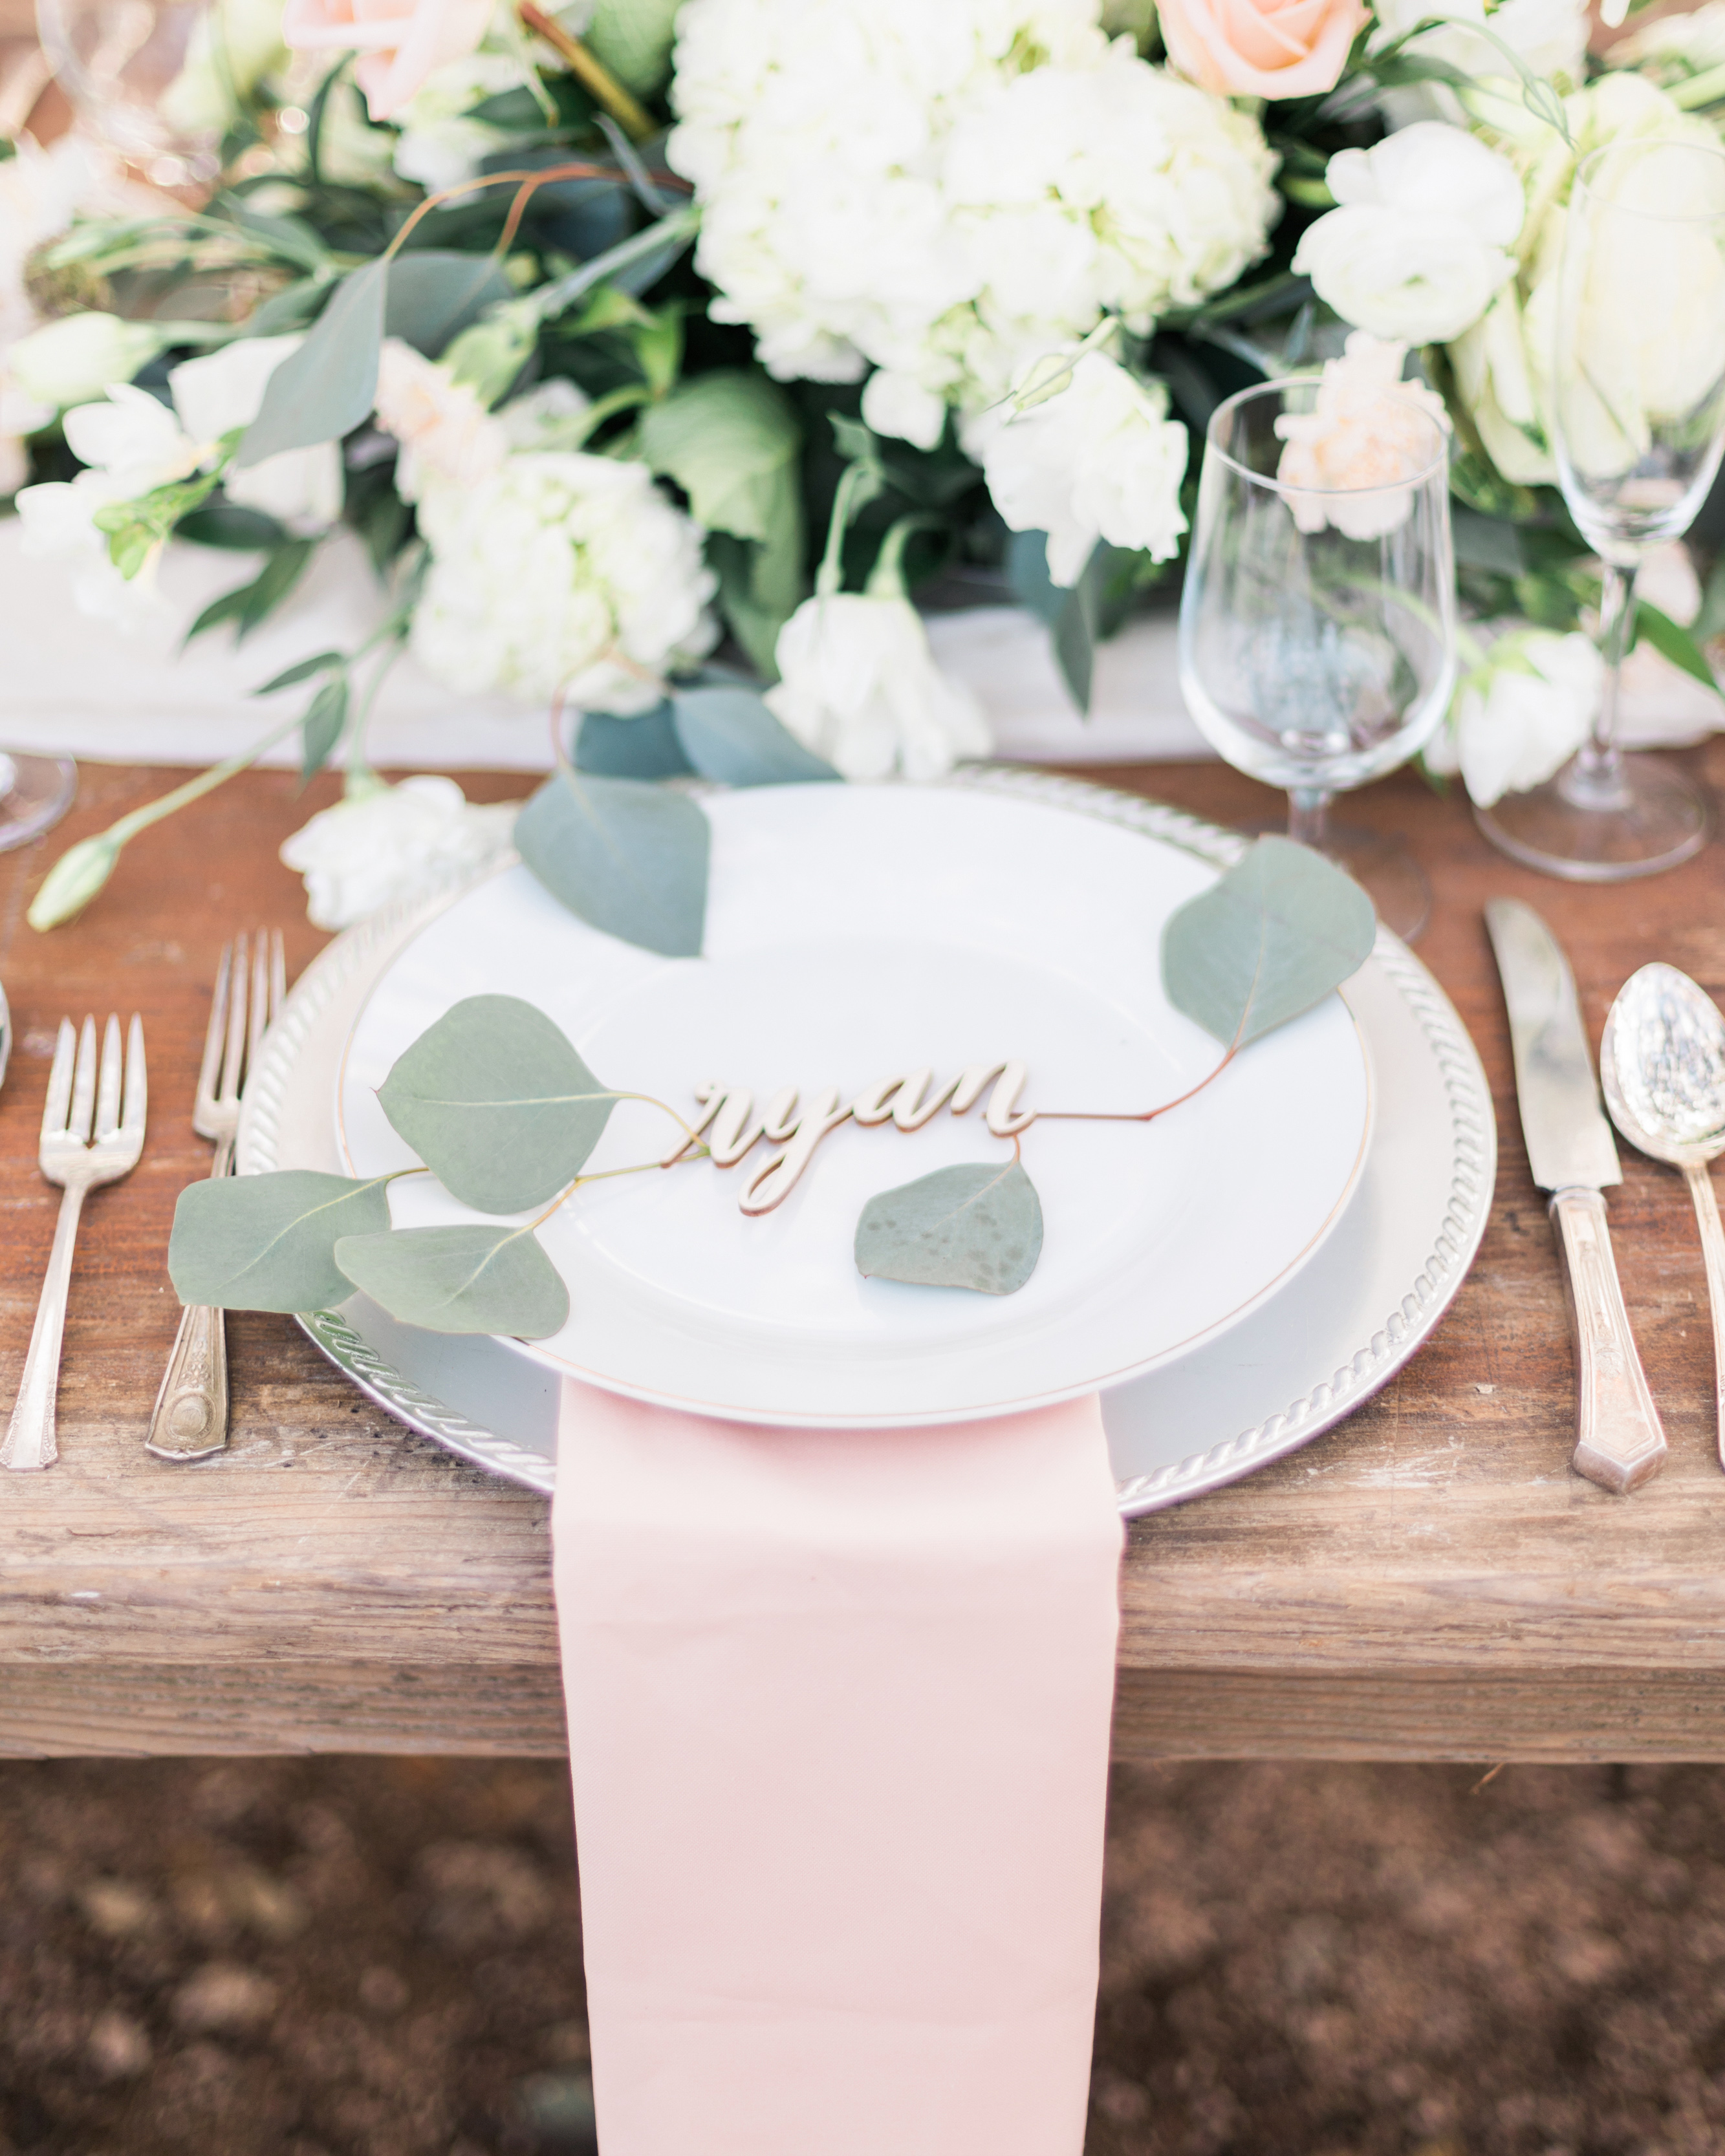 greenery to accent laser-cut place card table centerpiece